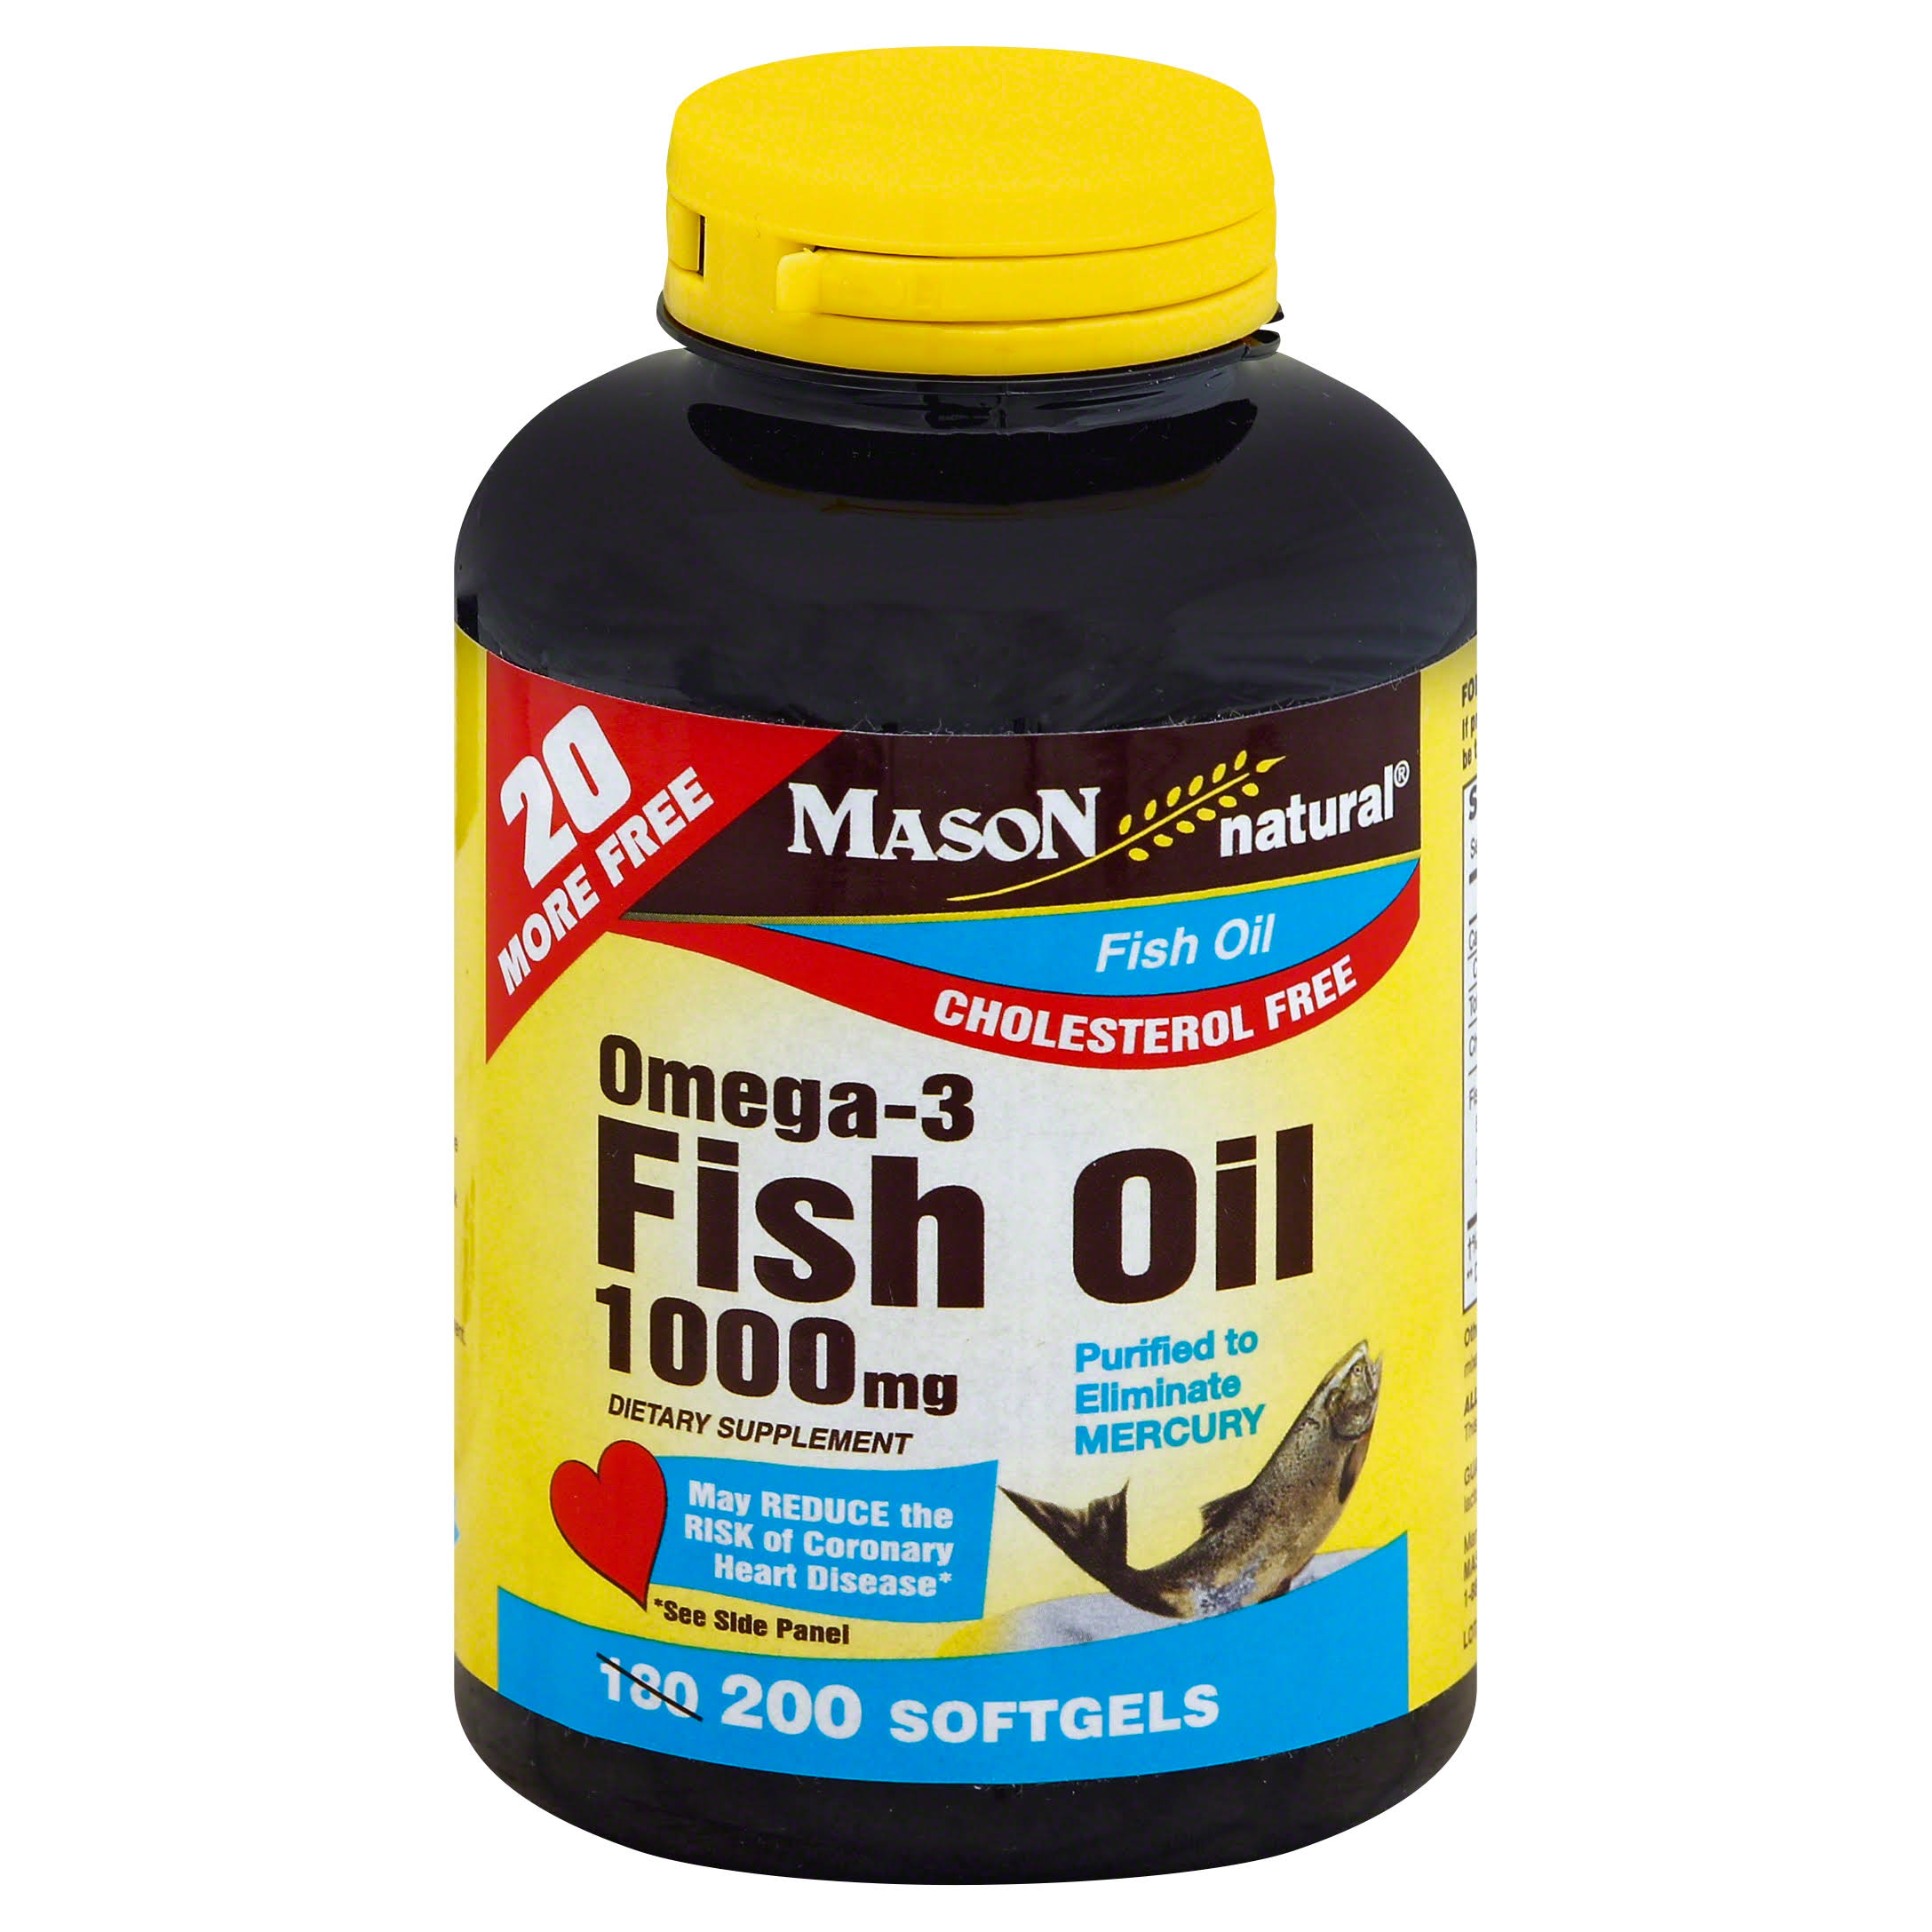 Mason Vitamins Omega-3 Fish Oil Dietary Supplement - 1000mg, 200 Softgels